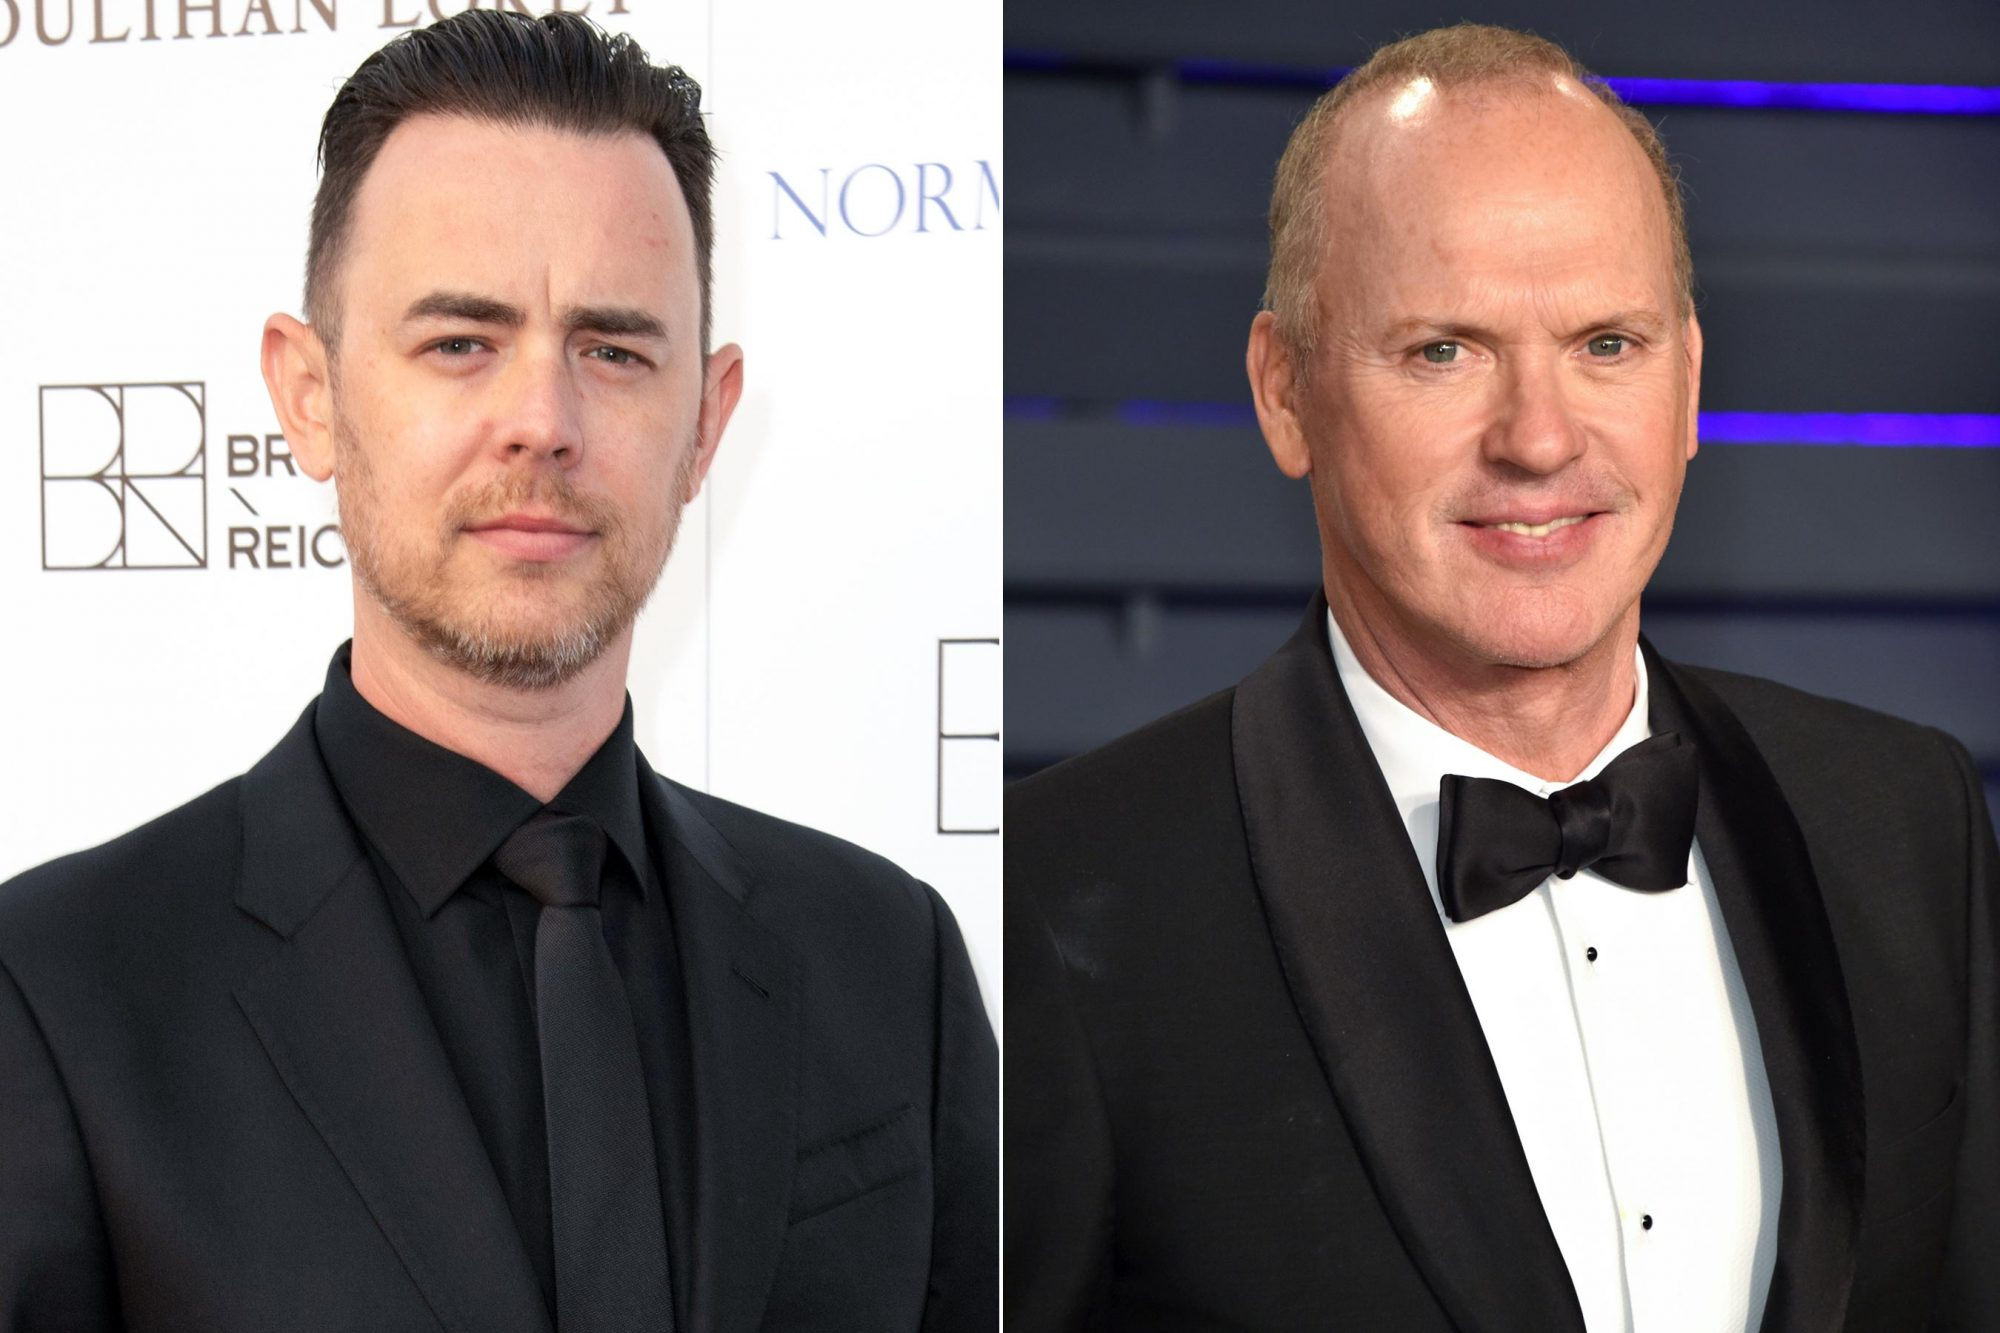 HOLLYWOOD, CA - MAY 19: Actor Colin Hanks attends Uplift Family Services At Hollygrove's 7th Annual Norma Jean Gala at Hollygrove Campus on May 19, 2018 in Hollywood, California. (Photo by Earl Gibson III/WireImage) BEVERLY HILLS, CA - FEBRUARY 24: Michael Keaton attends the 2019 Vanity Fair Oscar Party hosted by Radhika Jones at Wallis Annenberg Center for the Performing Arts on February 24, 2019 in Beverly Hills, California. (Photo by John Shearer/Getty Images)